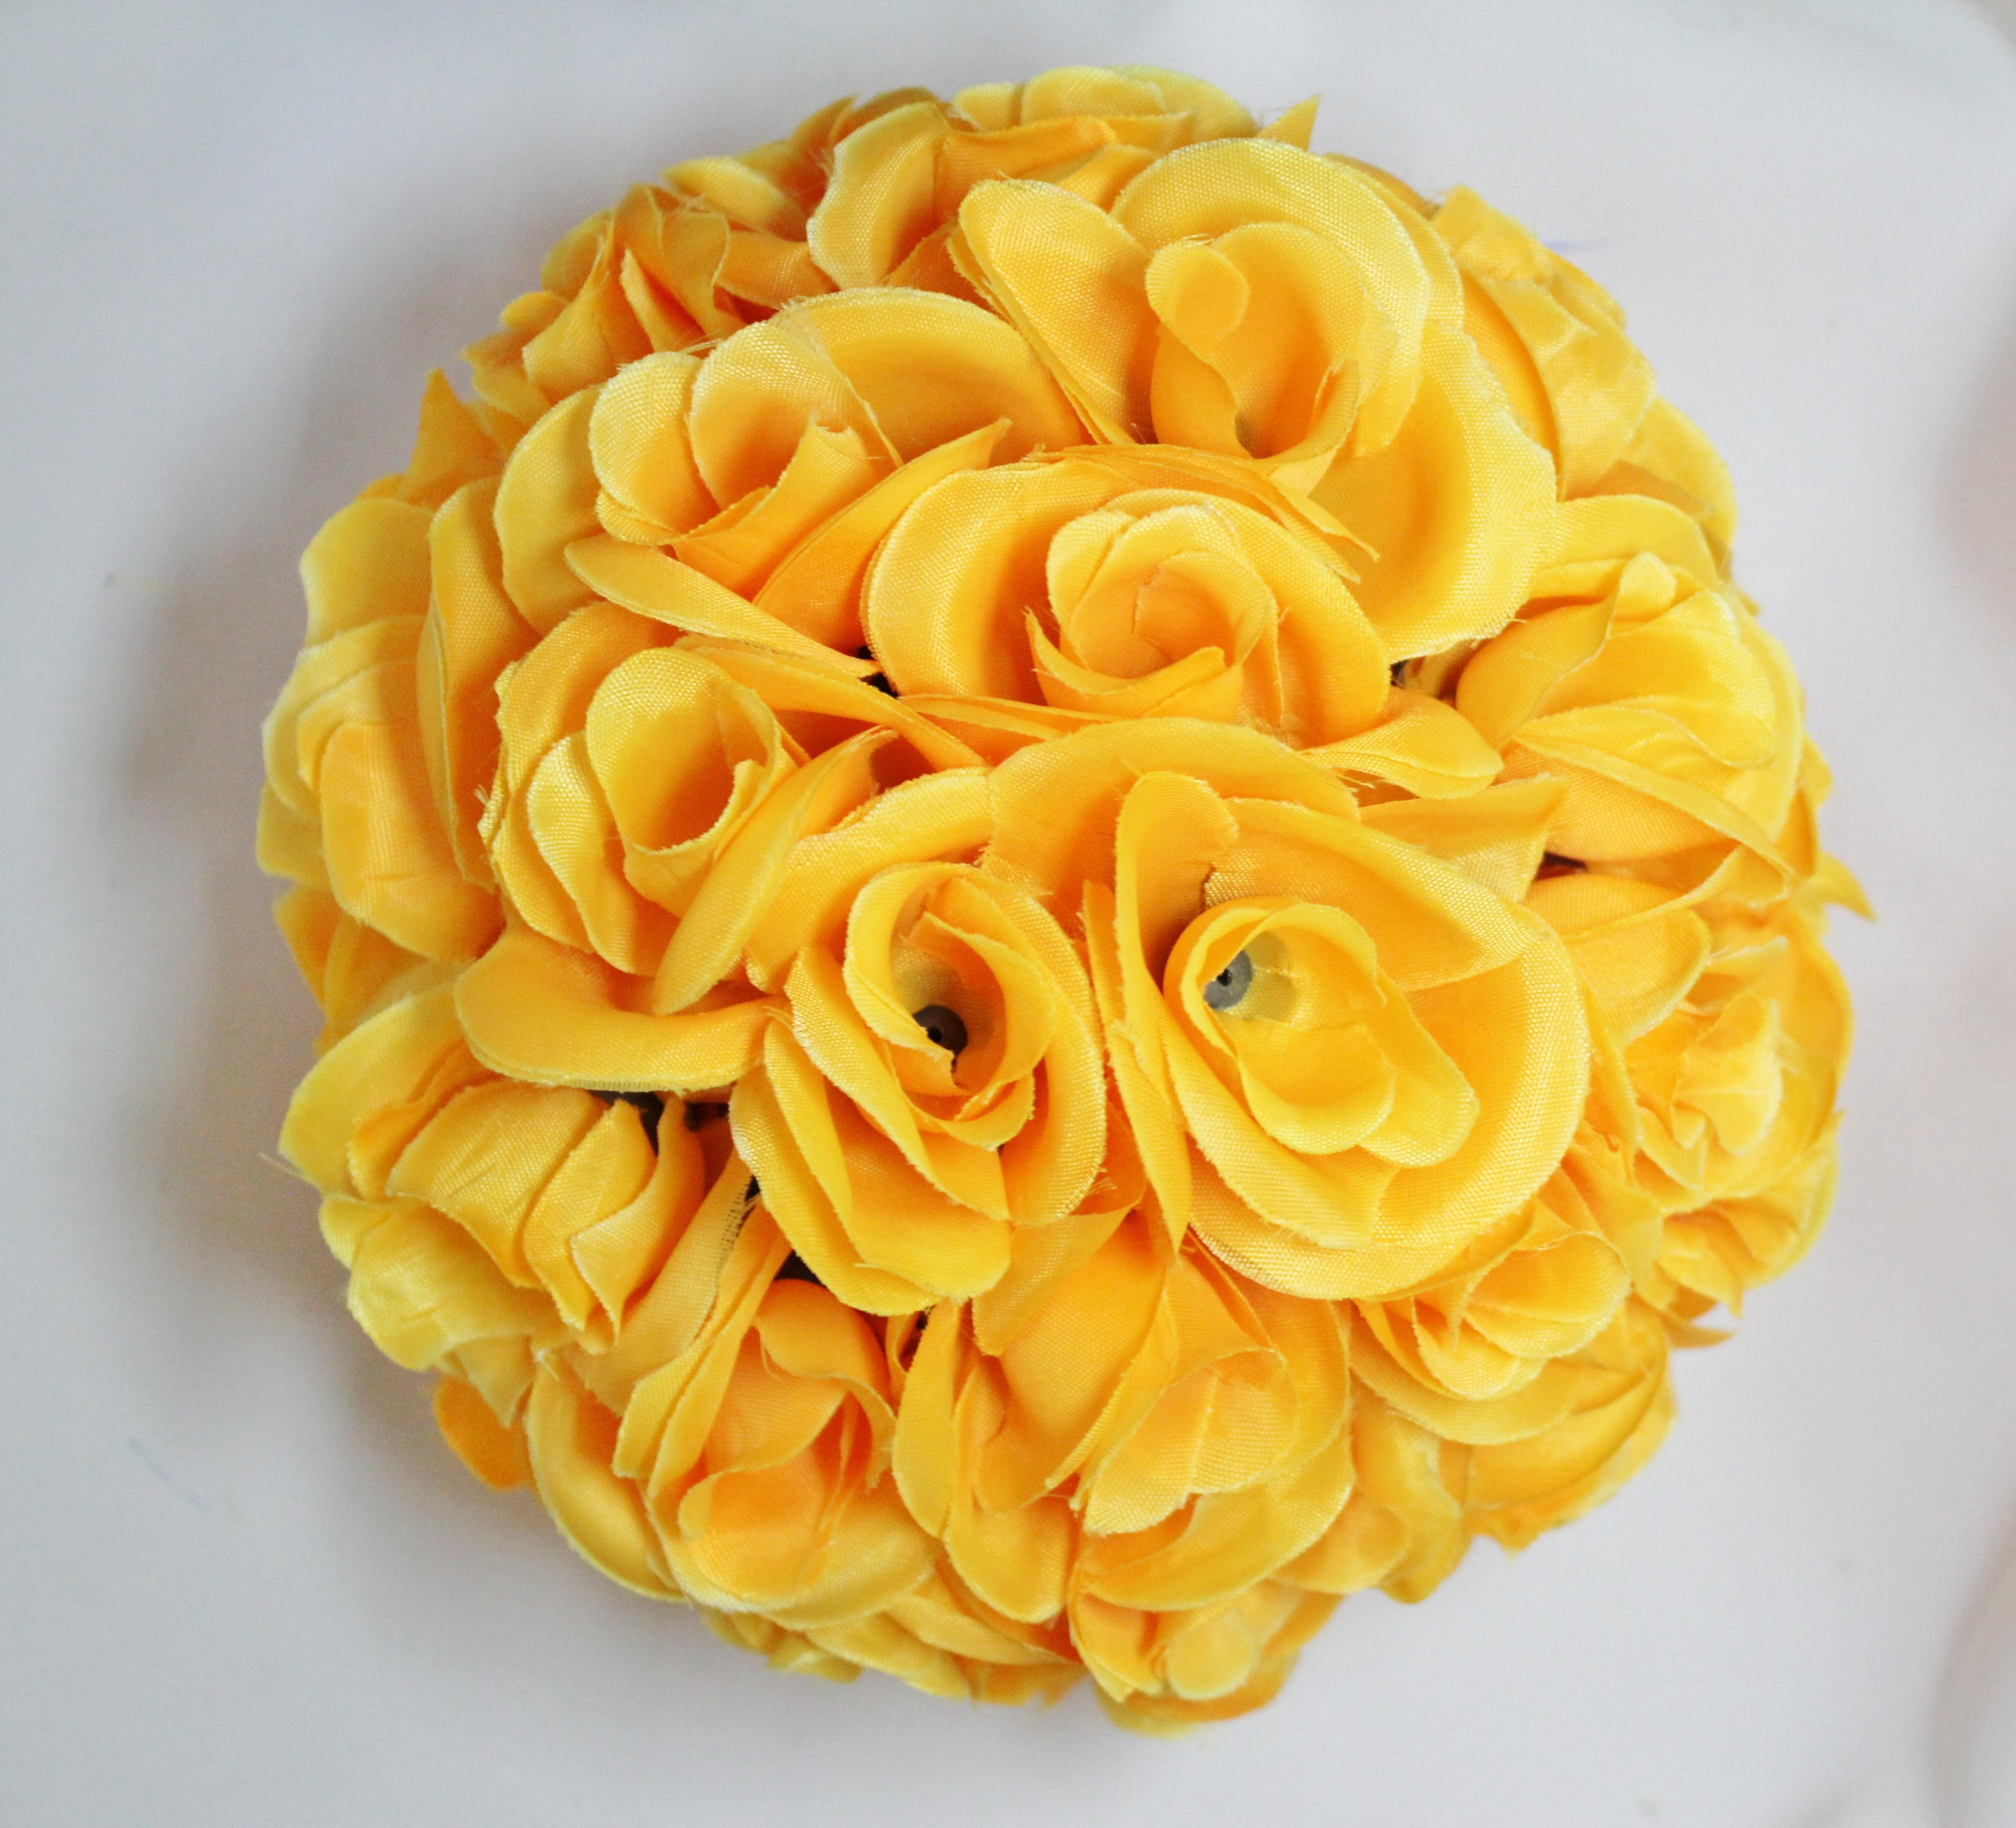 Yellow Flower Ball | LO Florist Supplies